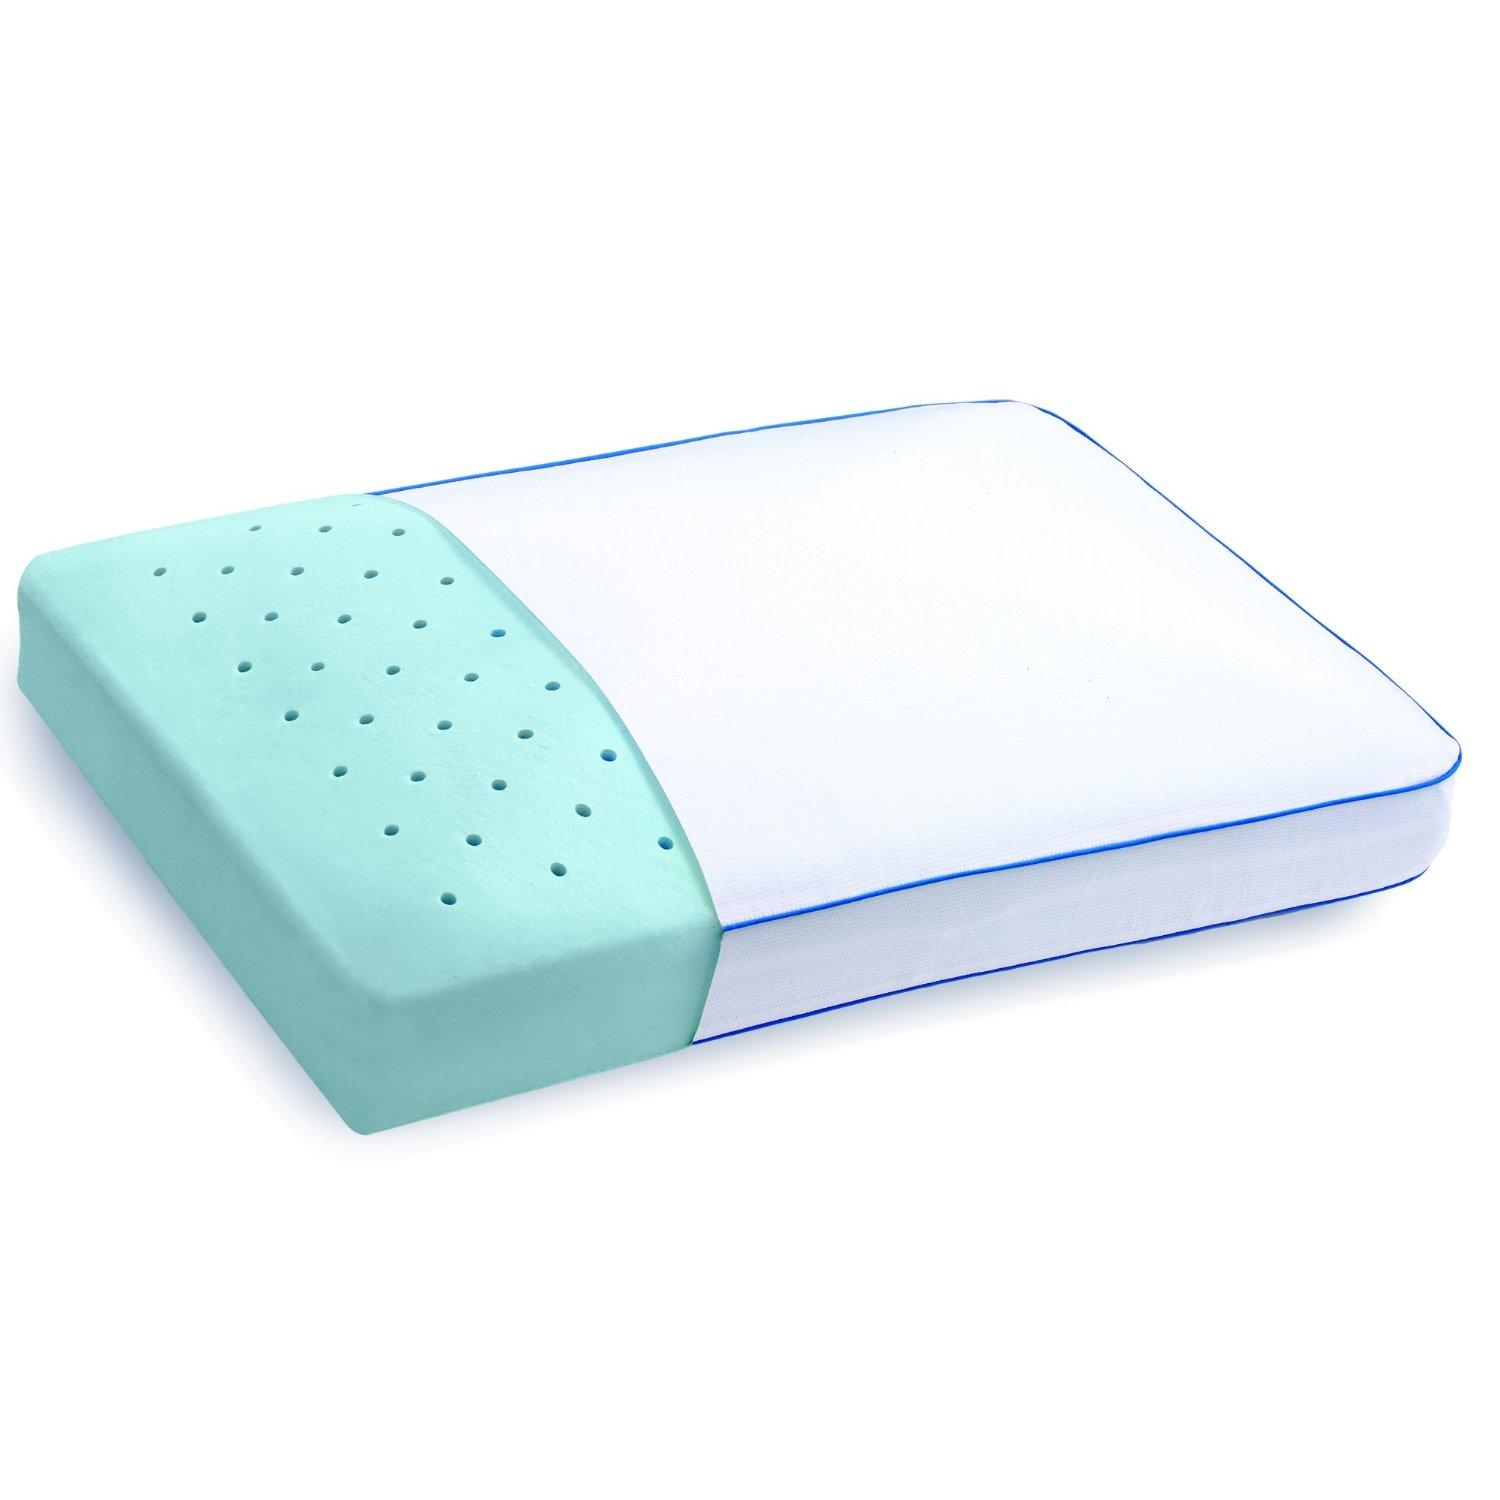 pillow gel amazon foam home cooling dp core side com kitchen memory lofty serta sleeper